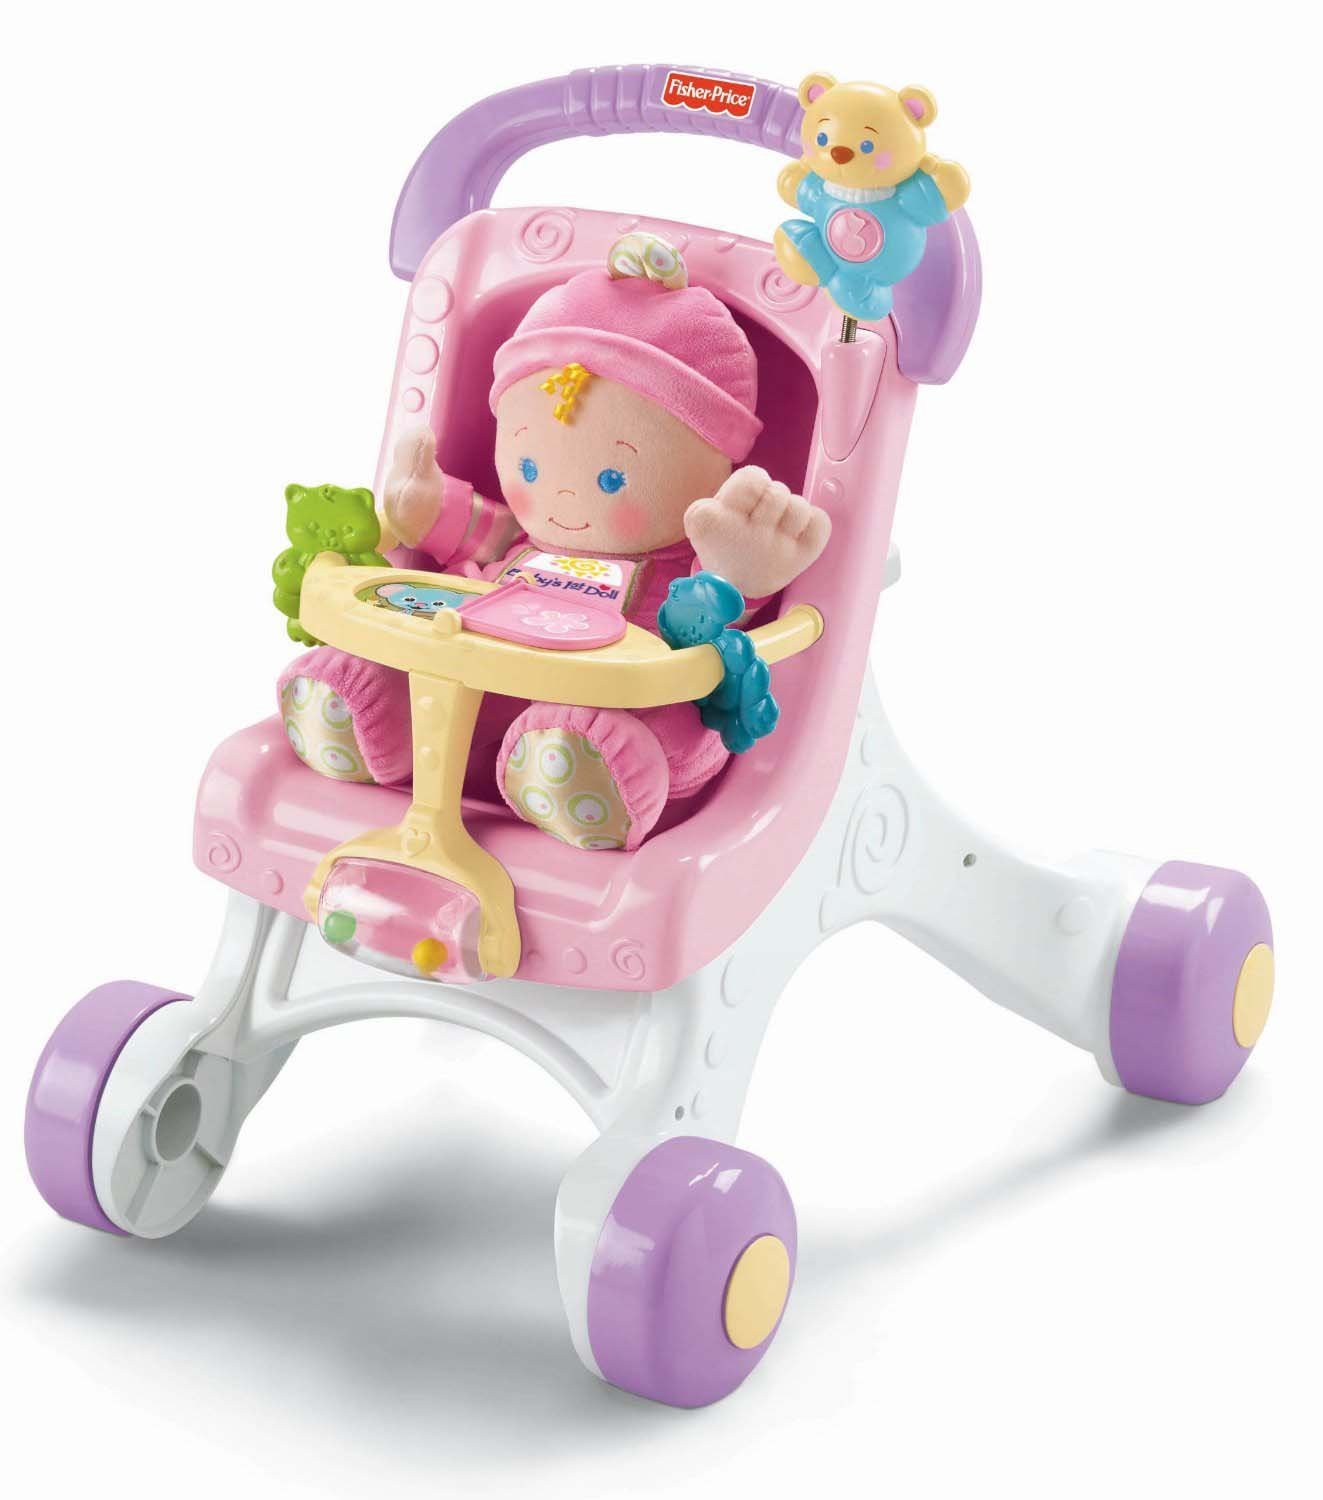 Toys For 2 Year Olds For Girls : Toys for year old girl birthday christmas gifts